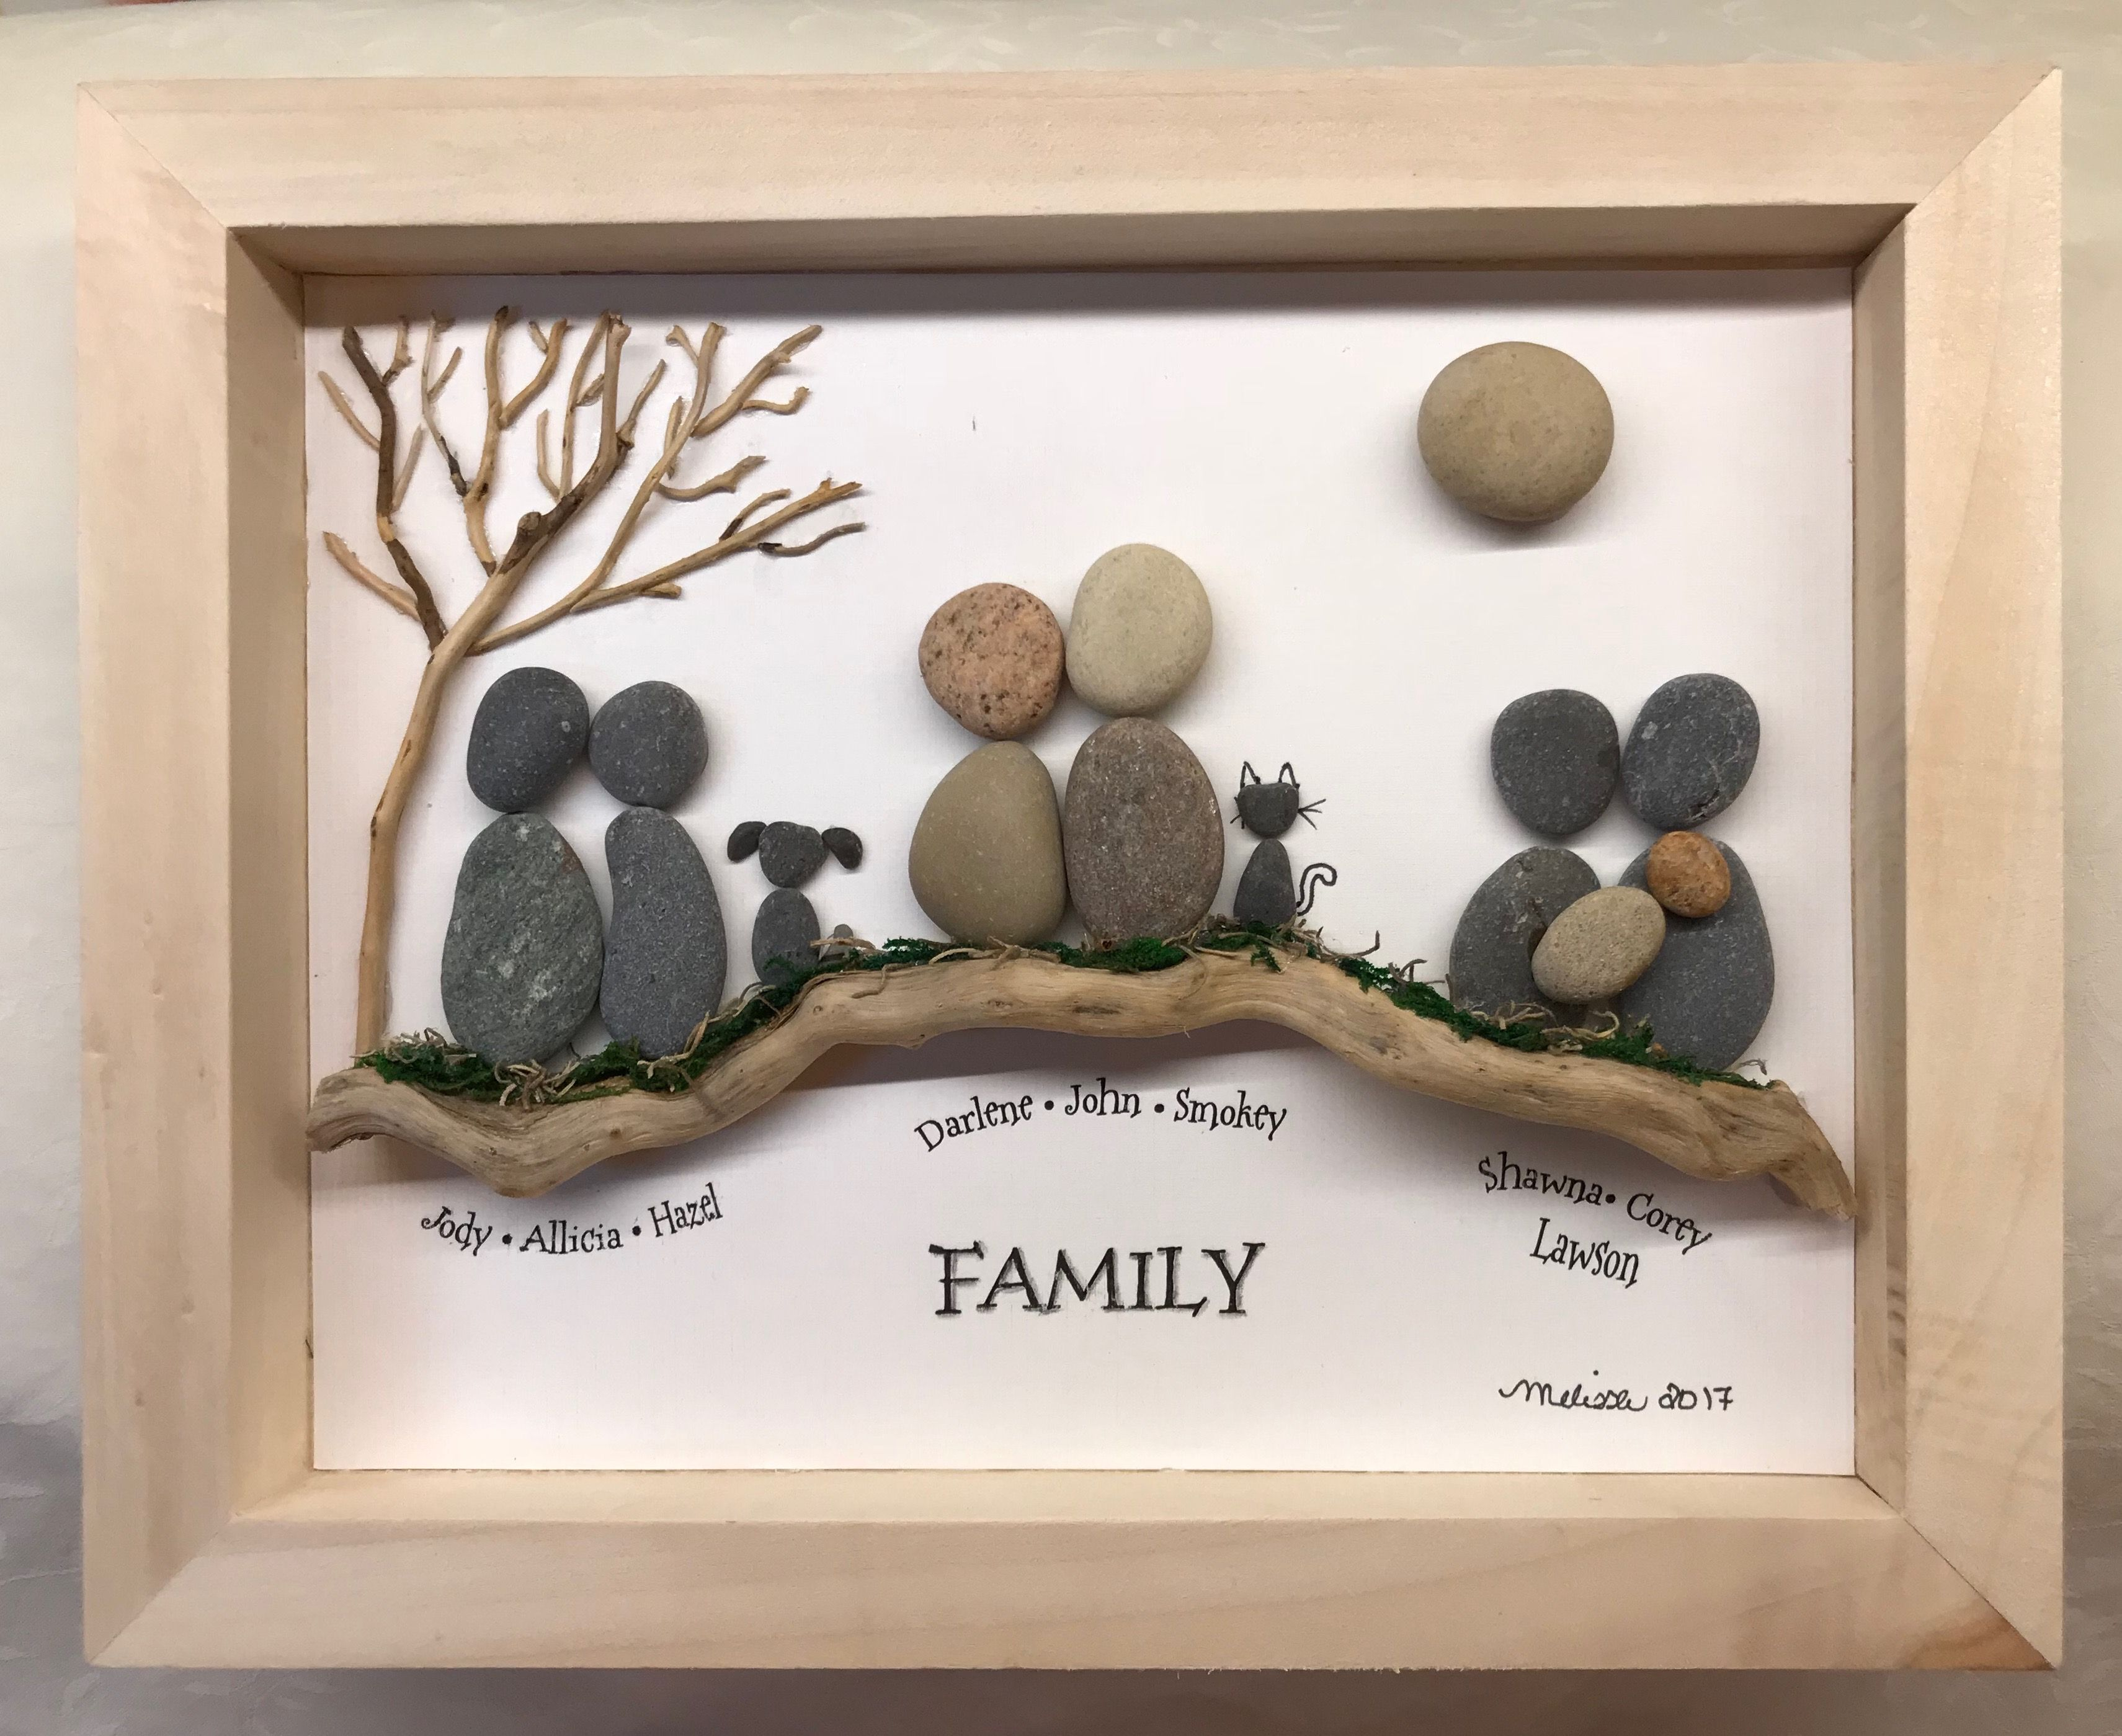 Pebble Stone Humans For Craft Pebble People Family